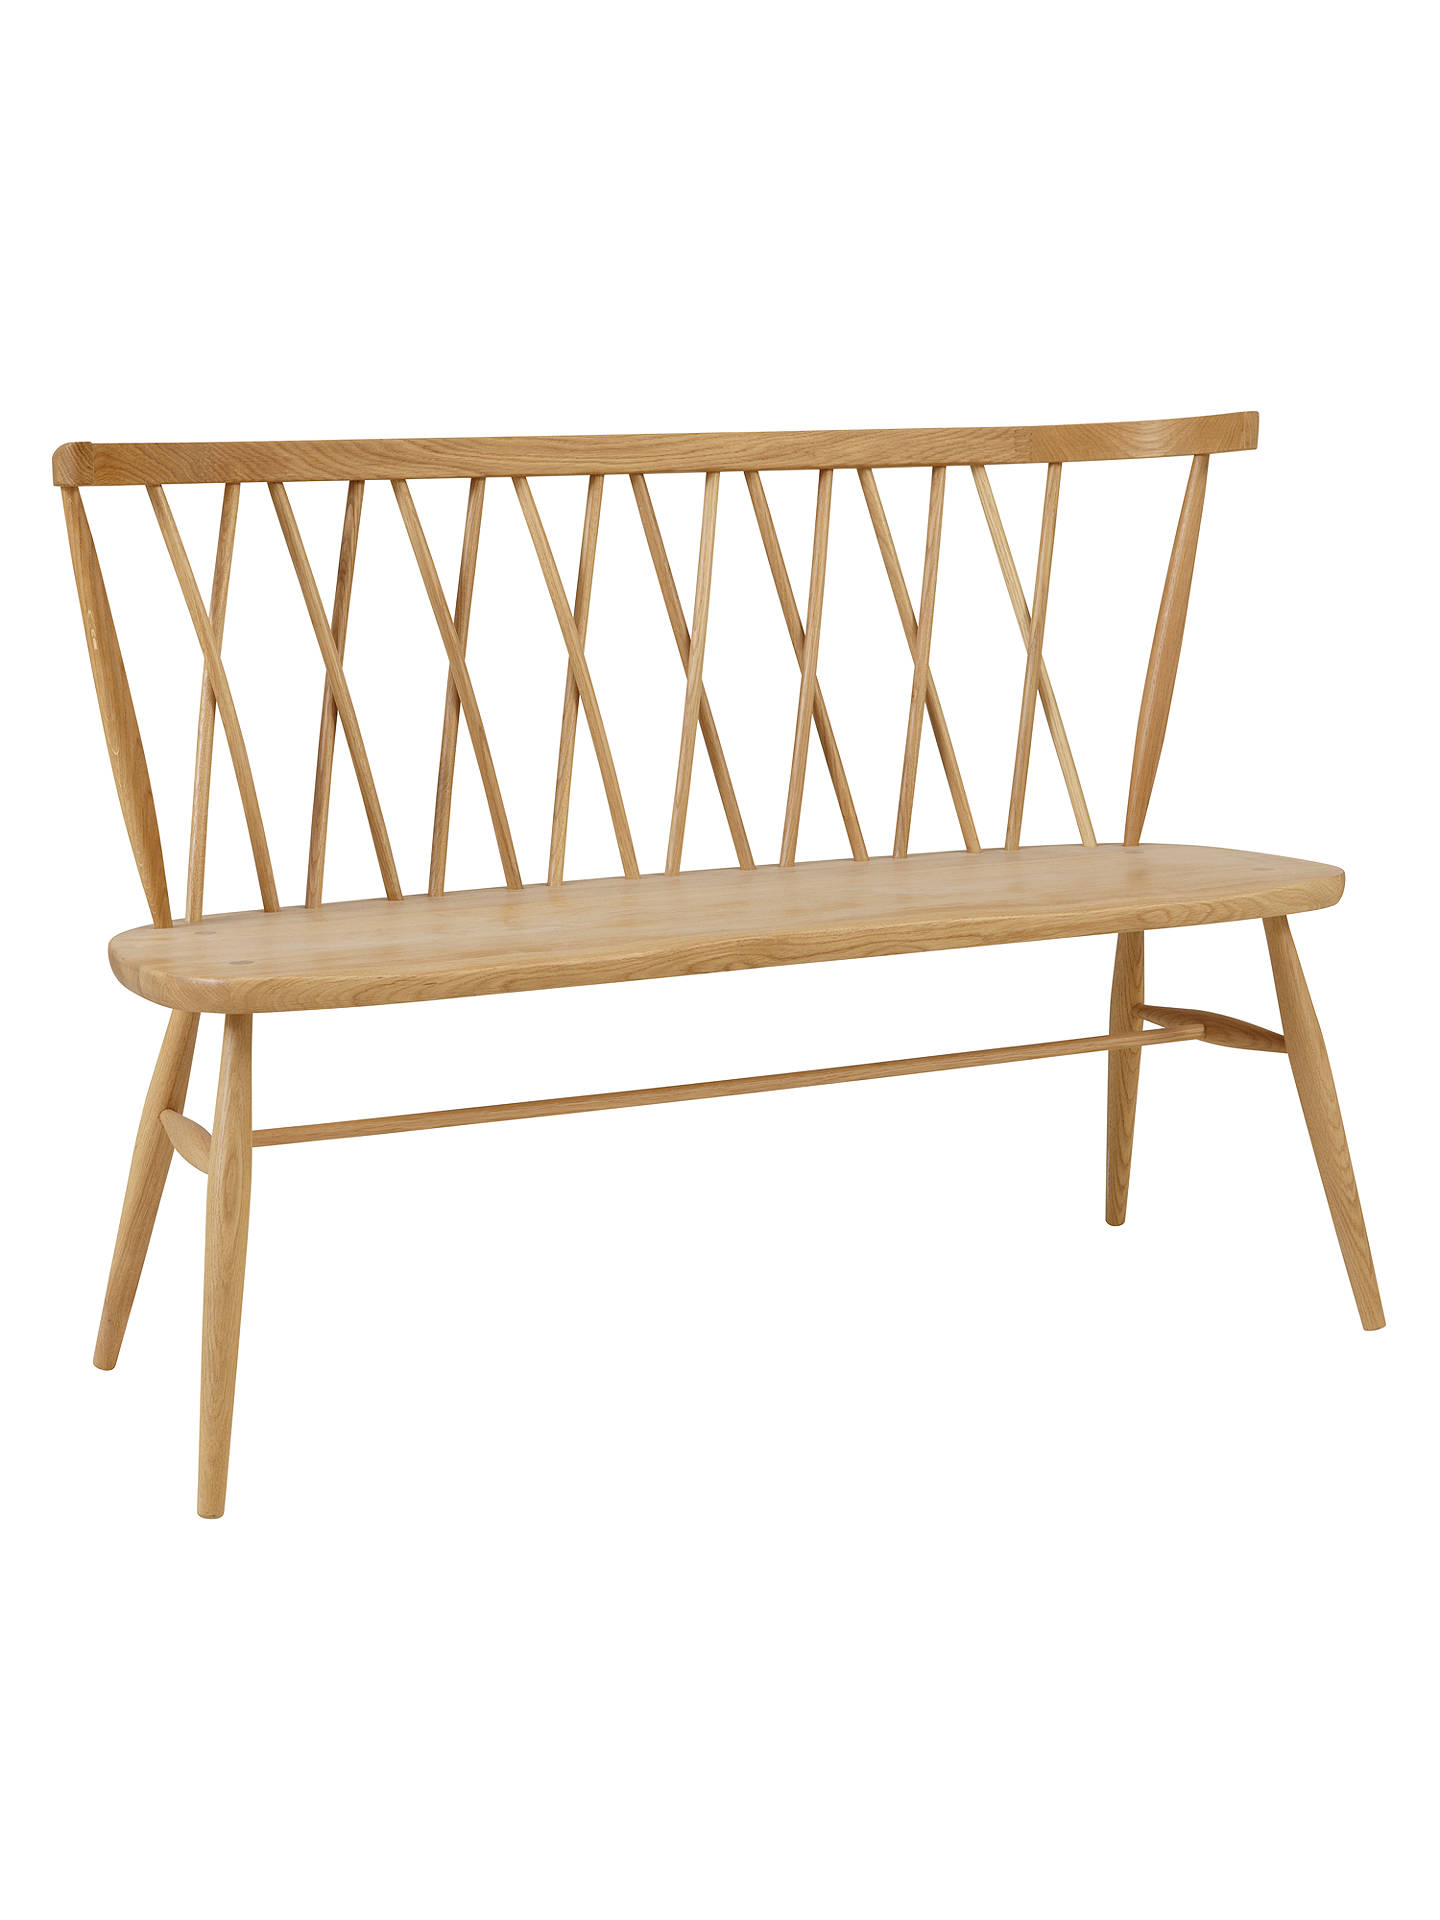 Pleasing Ercol For John Lewis Chiltern 3 Seater Dining Bench Light Alphanode Cool Chair Designs And Ideas Alphanodeonline